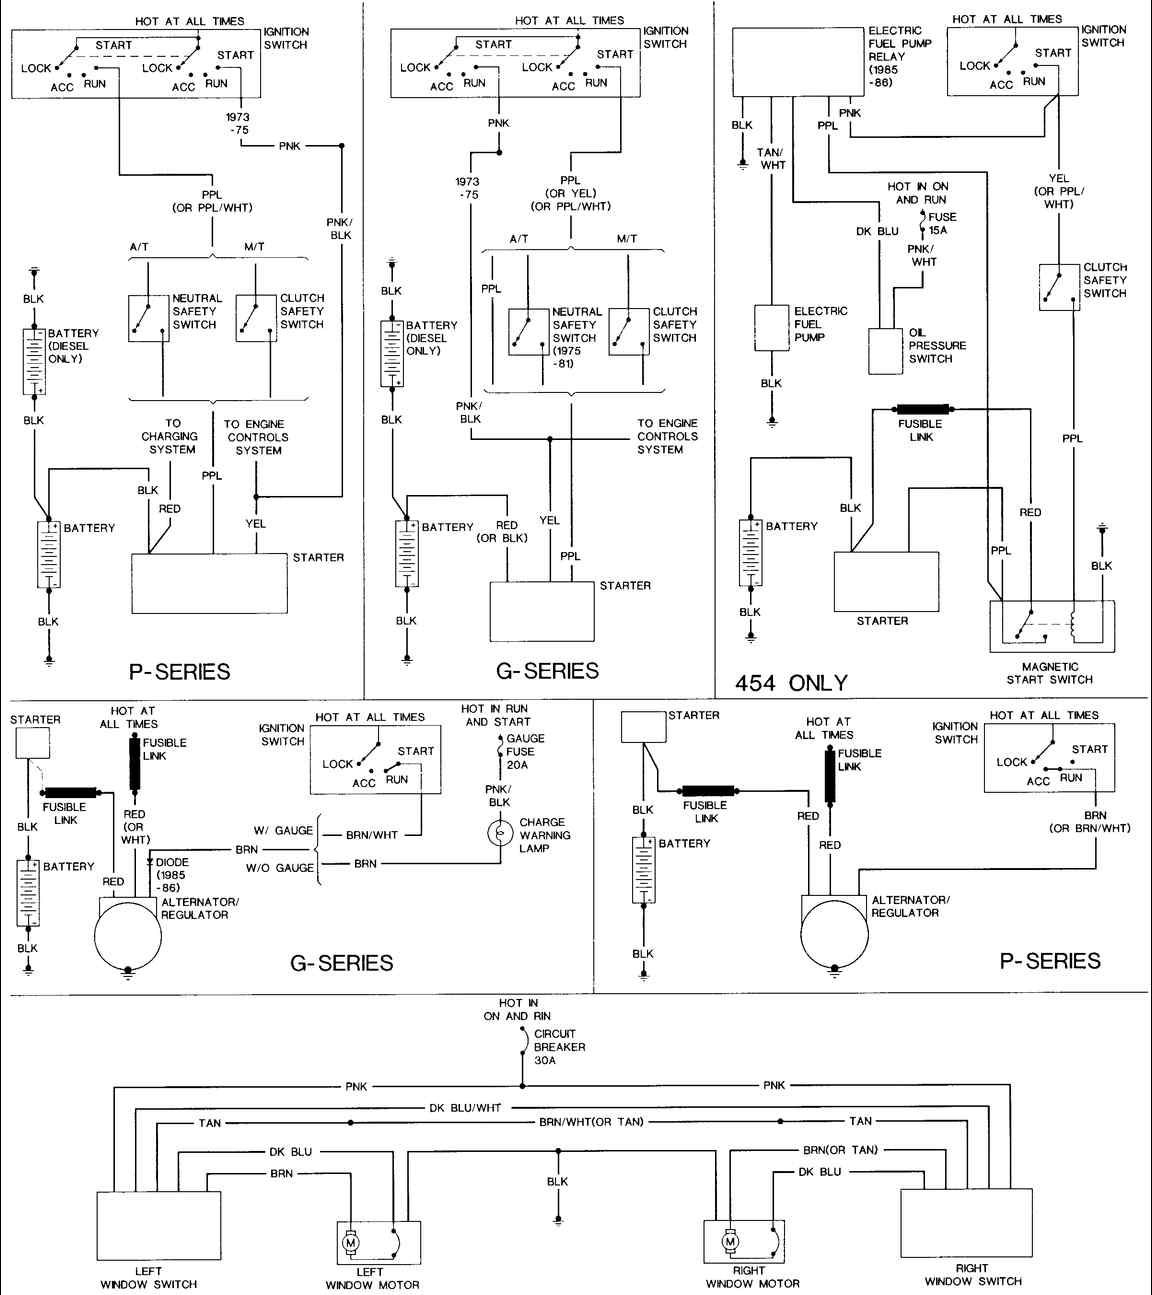 0c73623a181dc376dbb4777e2029d285 85 chevy truck wiring diagram 85 chevy van the steering column wiring diagram for 1983 chevy pickup at mifinder.co